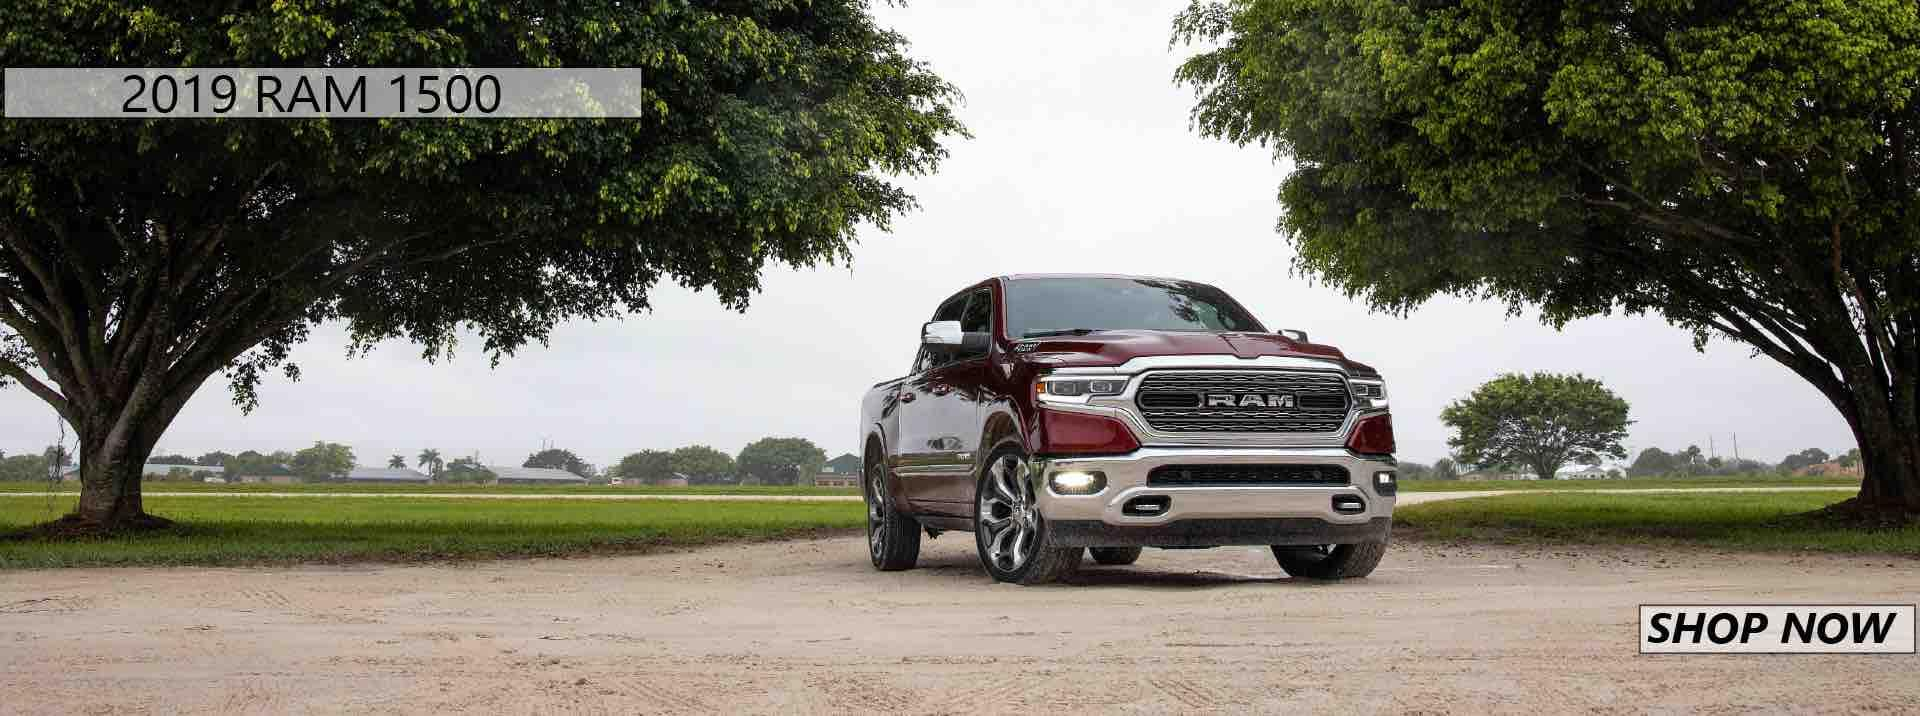 2019 Ram 1500 parked under two trees in Ennis